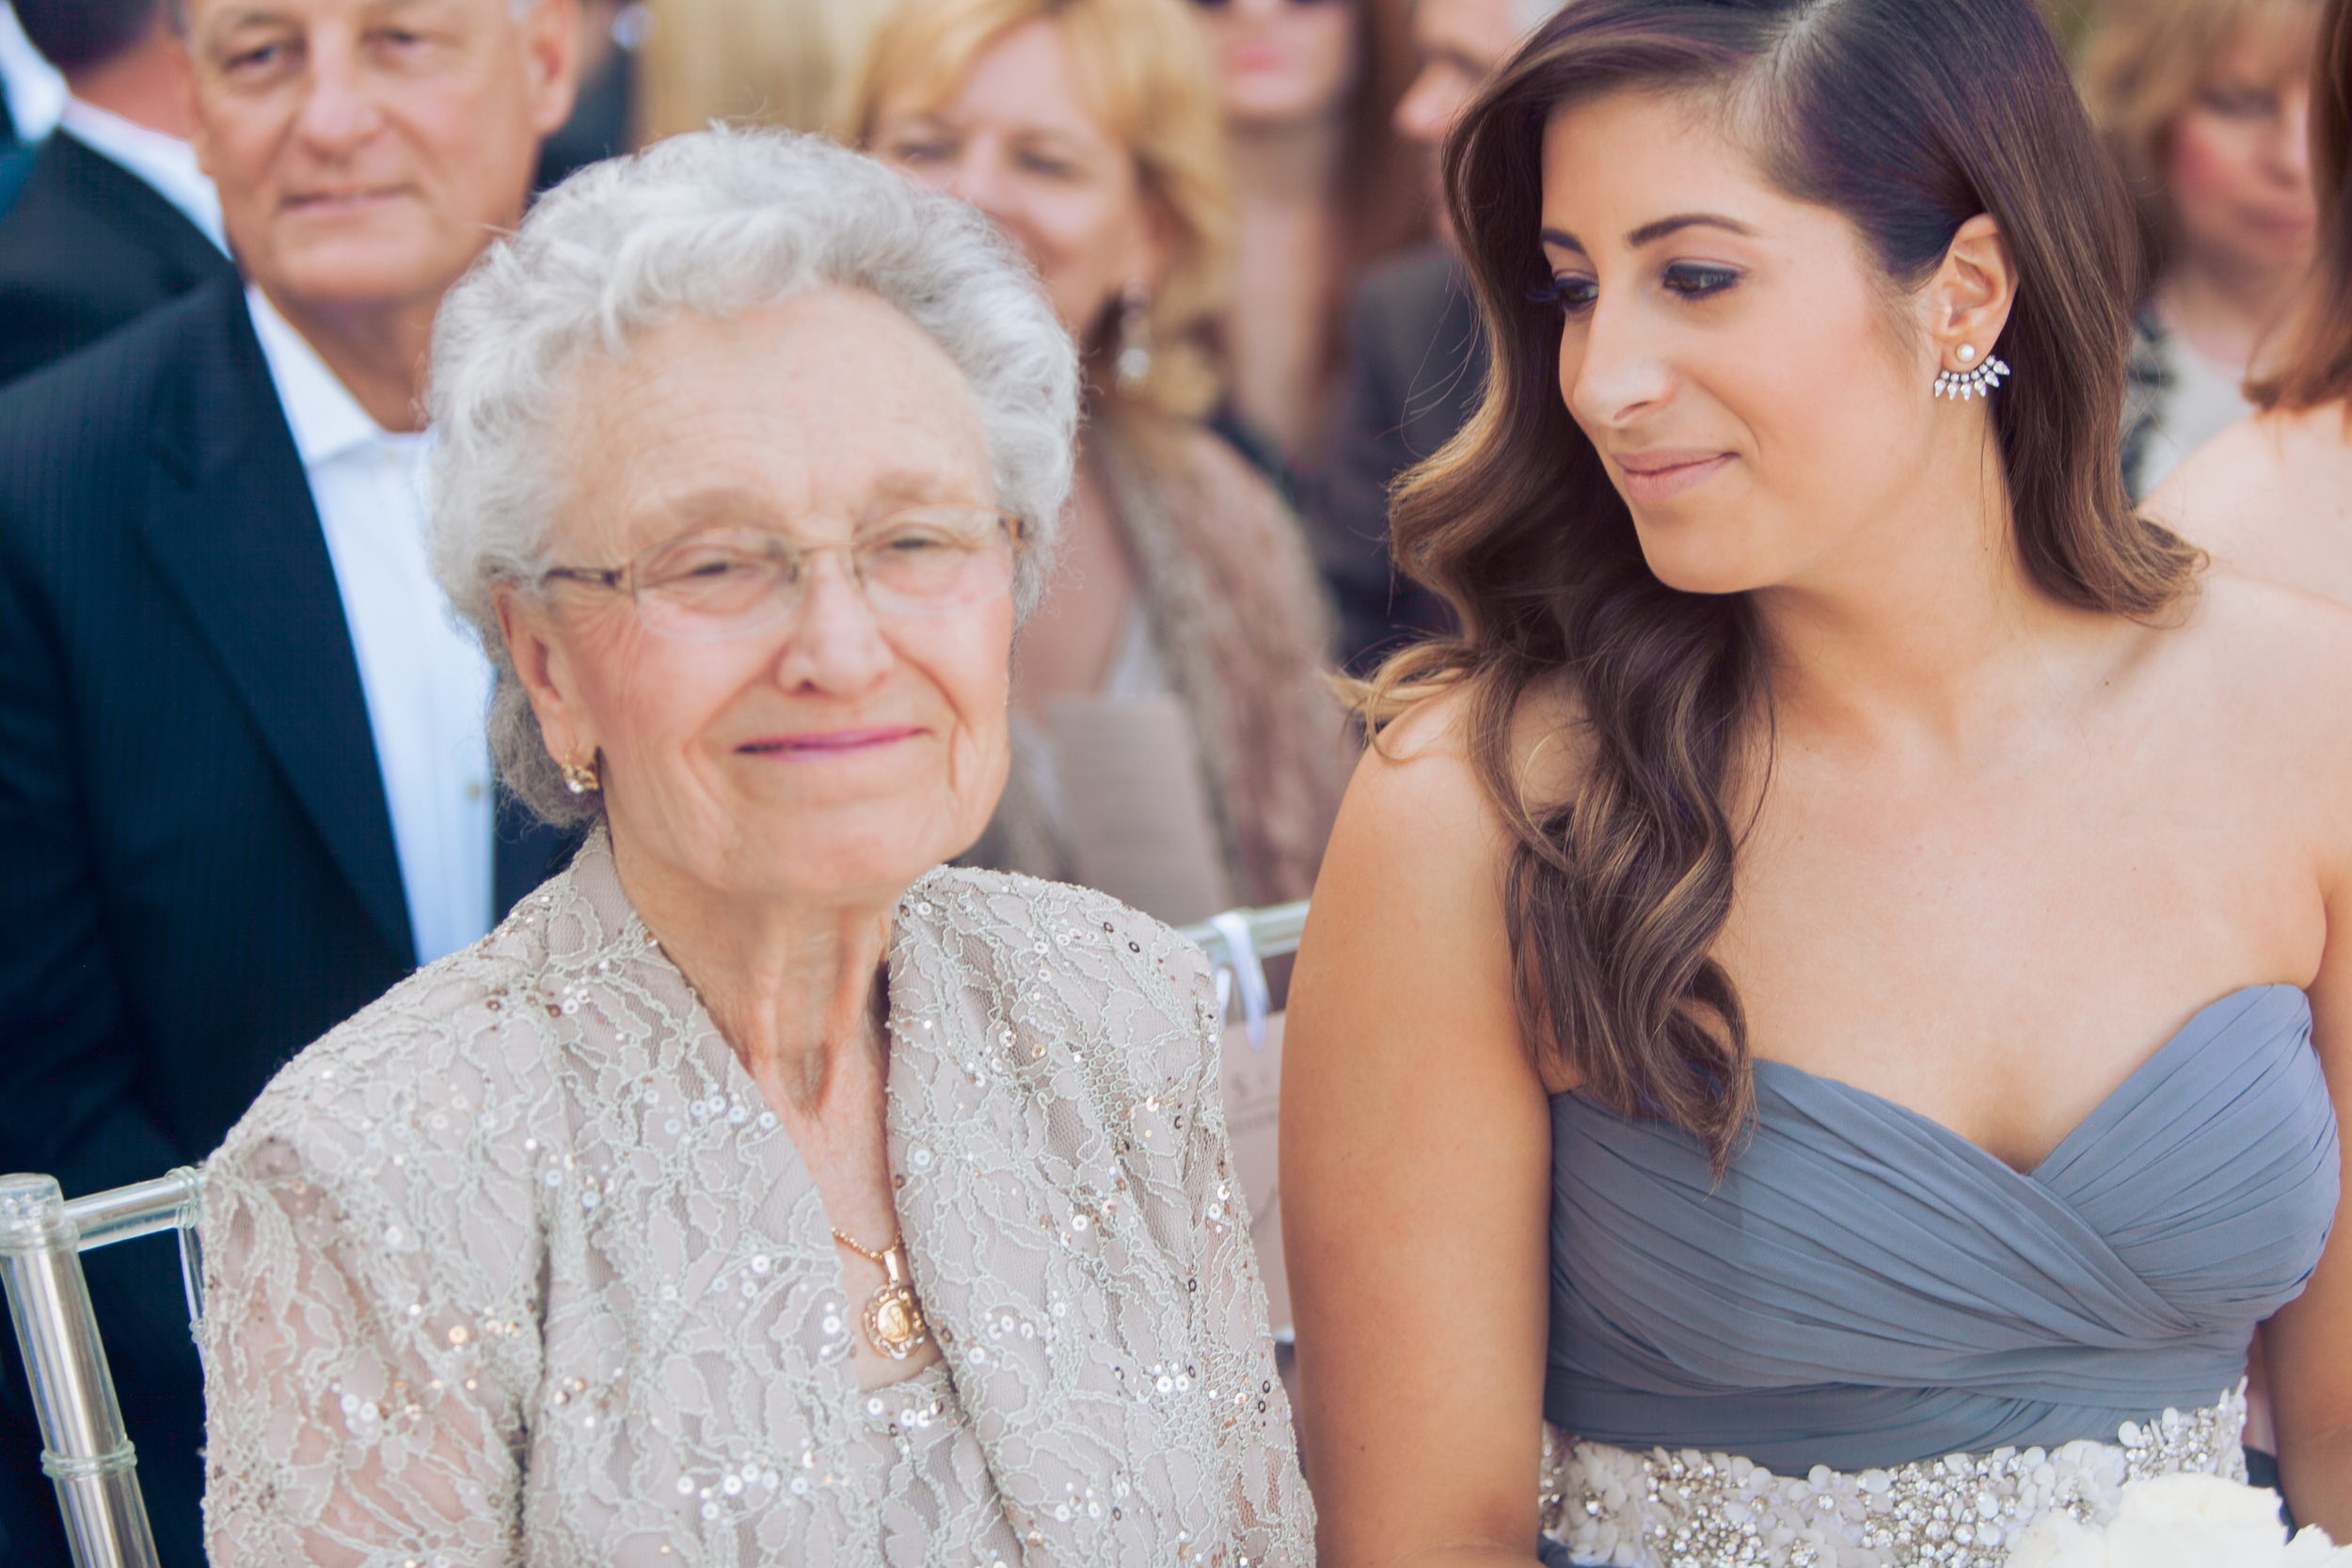 The bride's beloved grandma sat with the maid of honor and bridesmaids during the wedding ceremony.    Las Vegas Wedding Planner Andrea Eppolito   Wedding at Lake Las Vegas   White and Blu  sh and Grey Wedding   Luxury Wedding Las Vegas